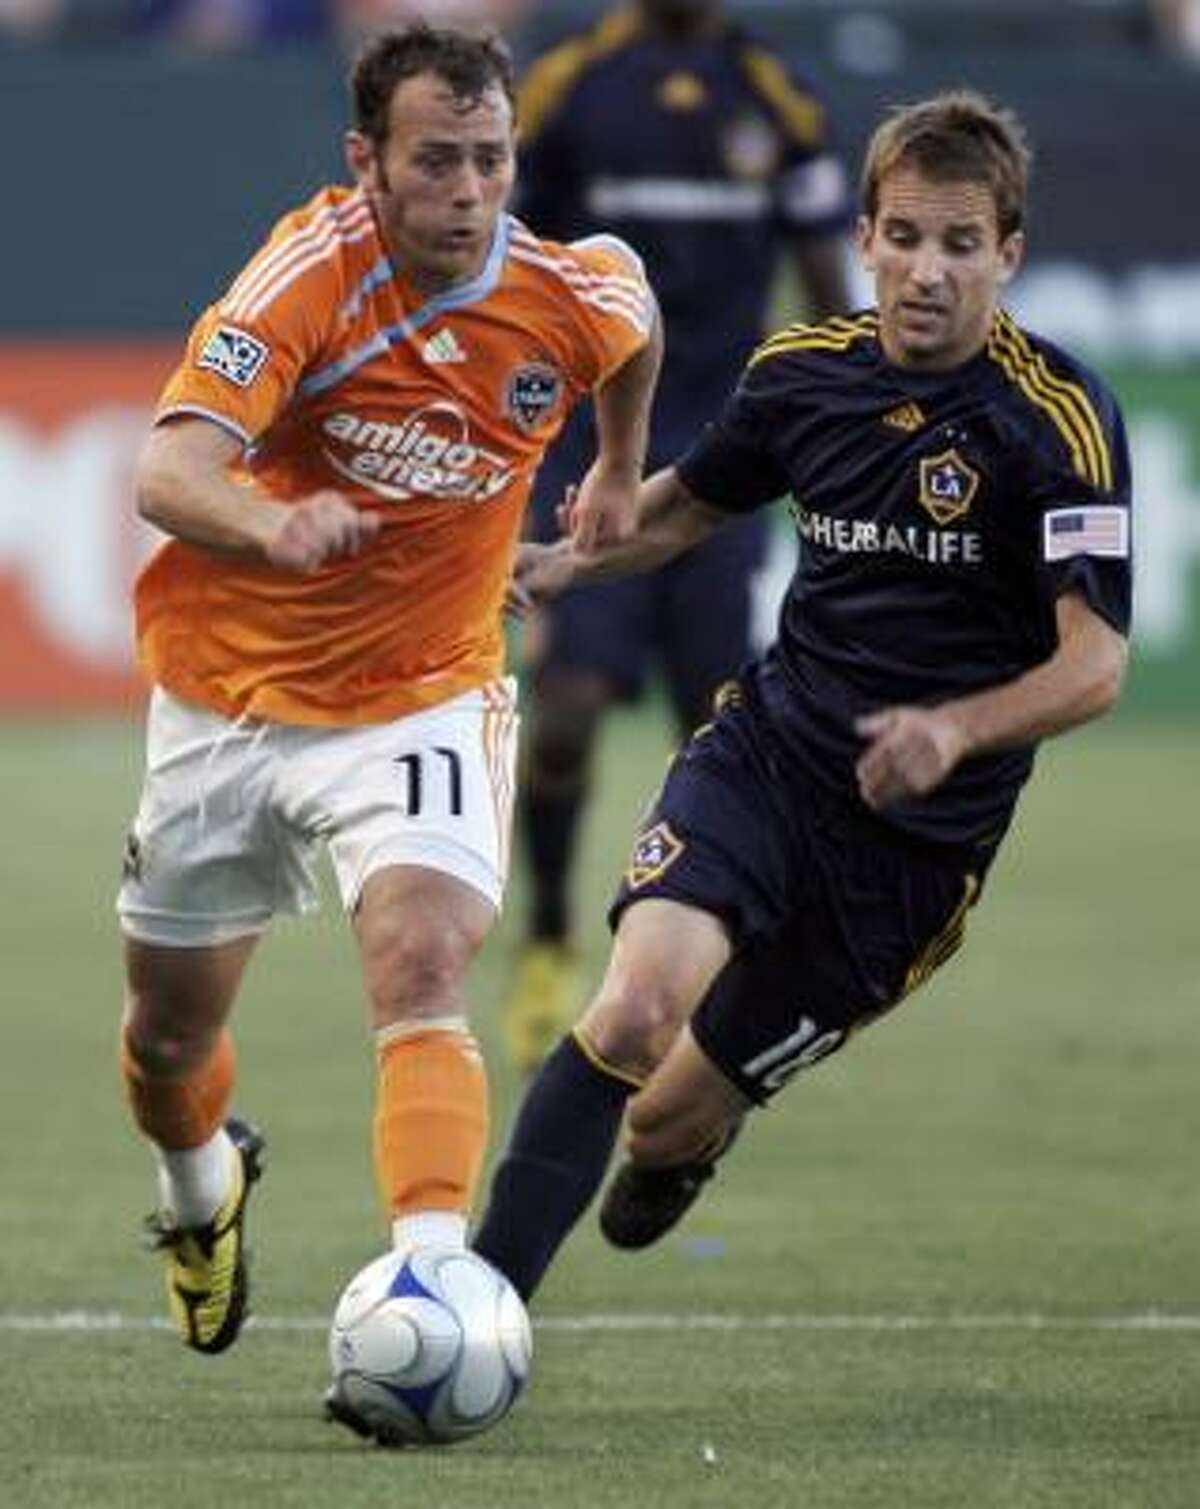 The Dynamo's Brad Davis, left, dribbles the ball in front of Los Angeles' Mike Magee.